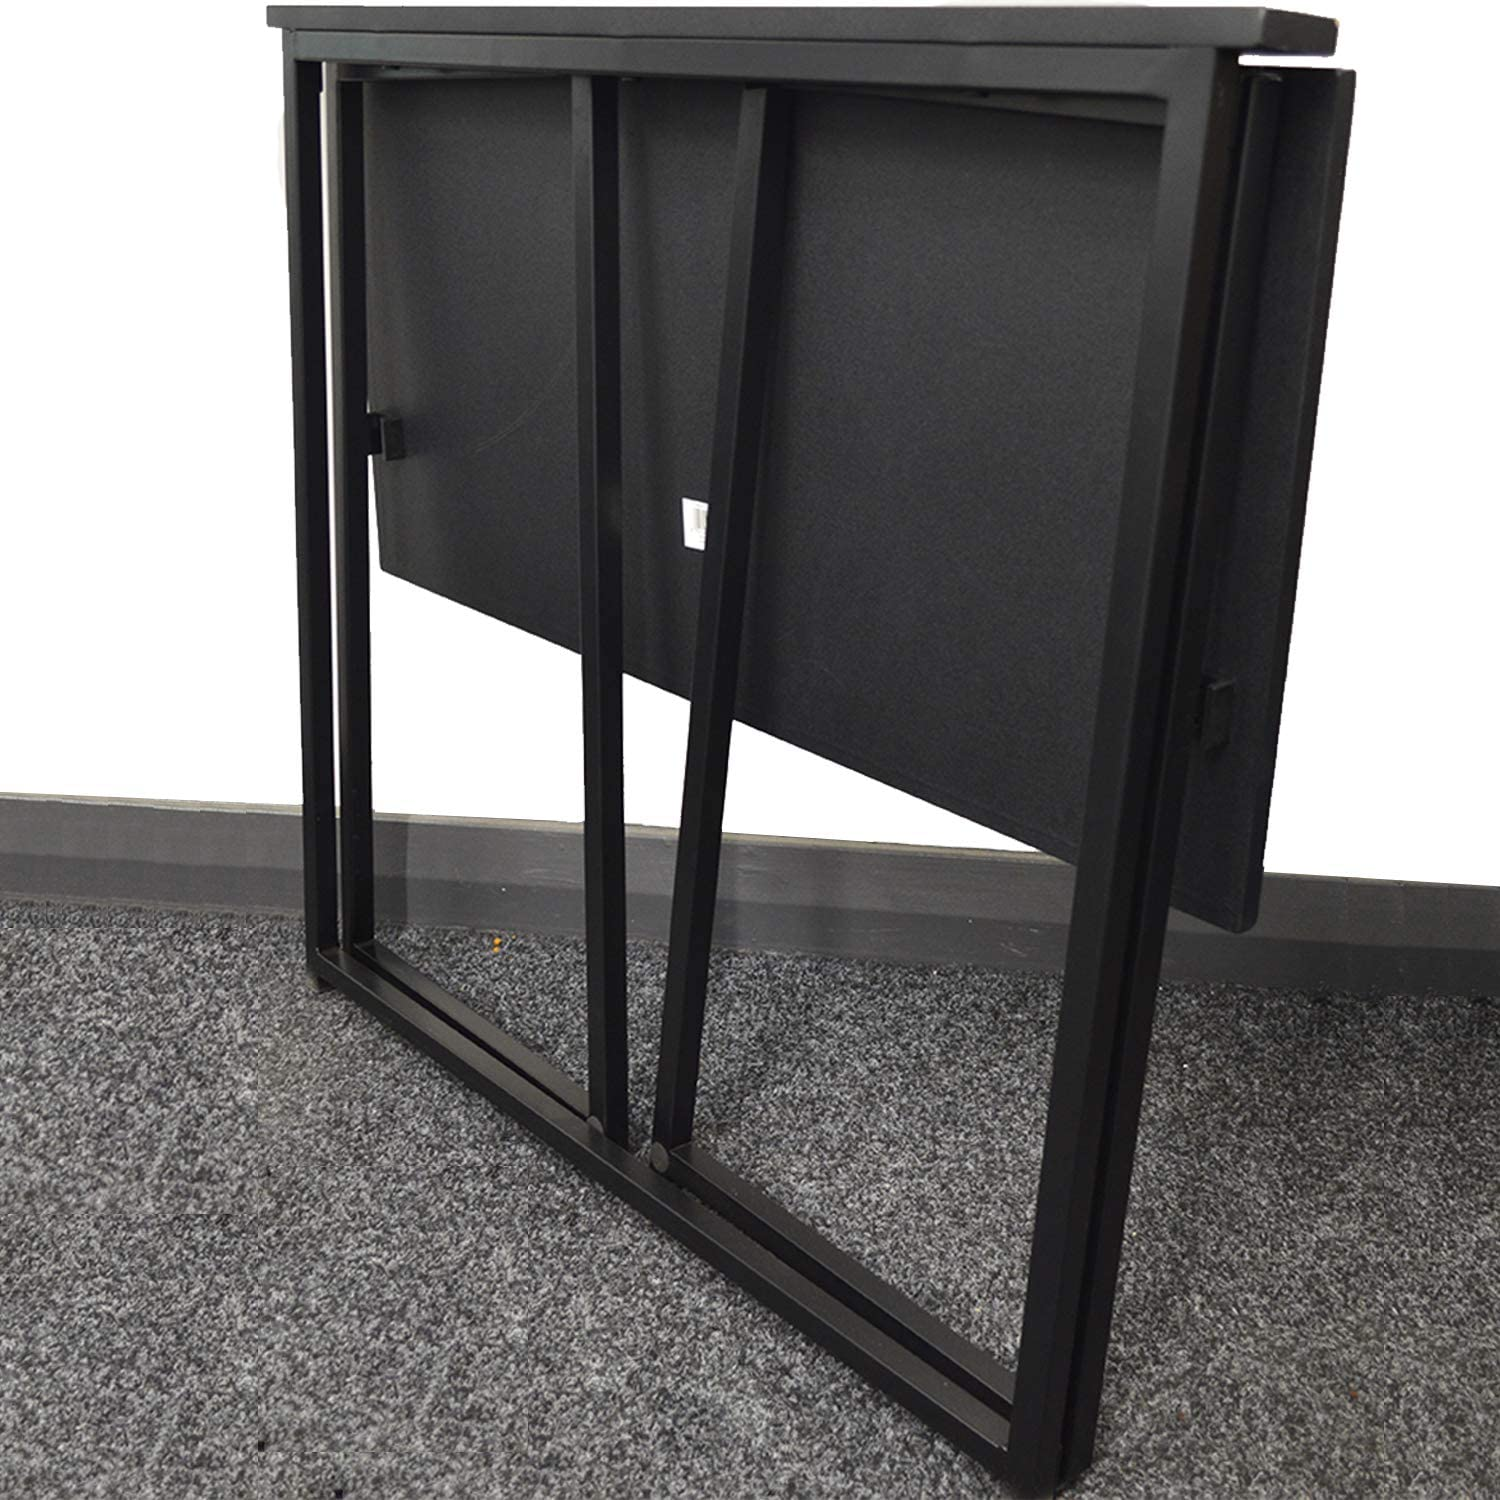 FB FunkyBuys Compact Folding Computer Desk Home Office Laptop Desktop Table Simple Small Home PC Laptop Table Study Desk Black